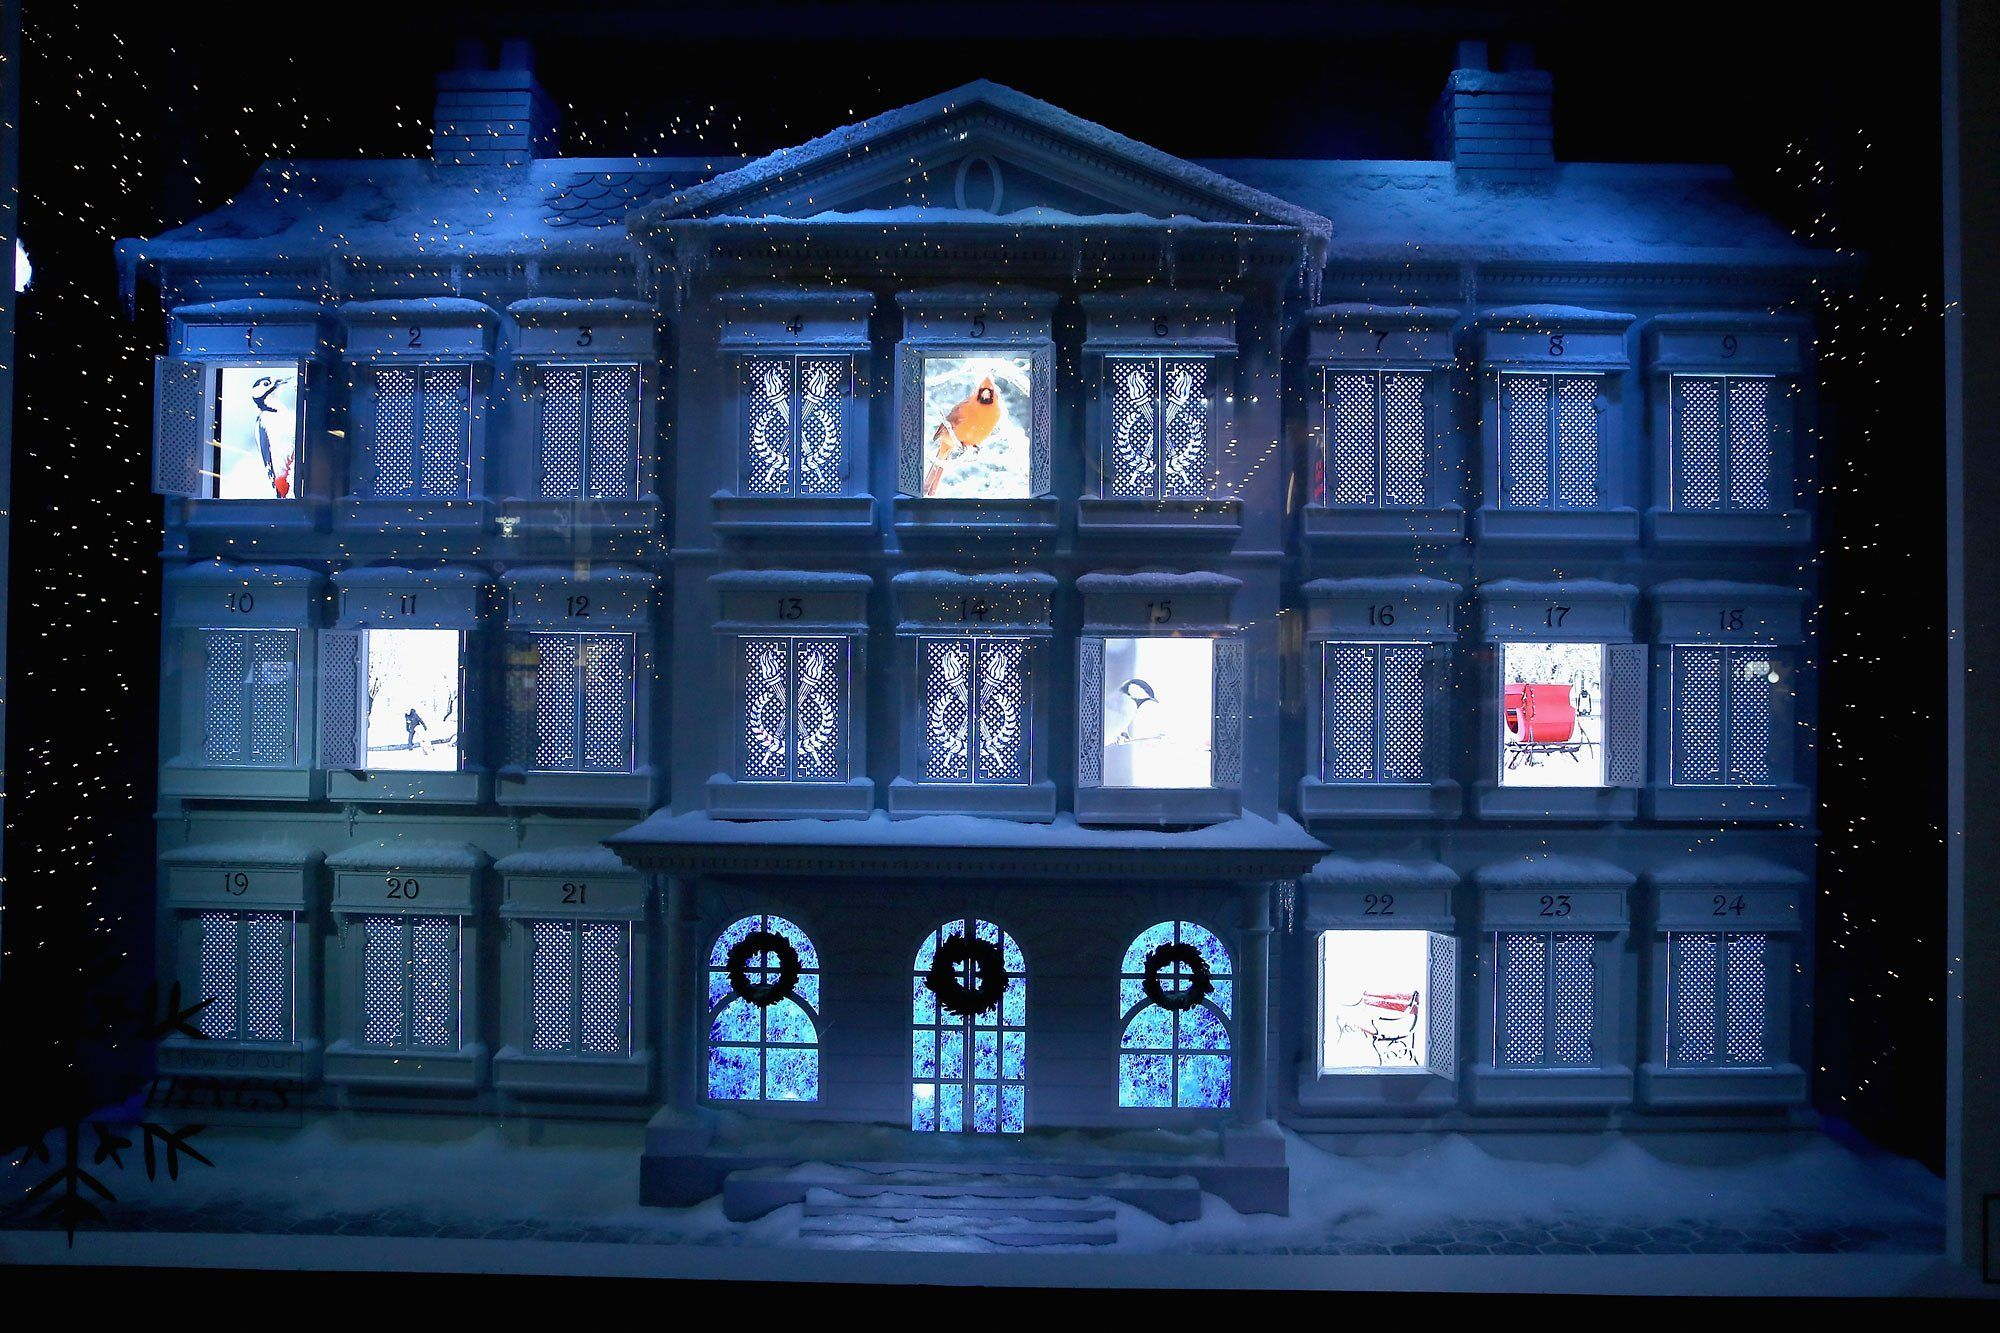 New York City Holiday Windows 2015 | Lord and Creative studio